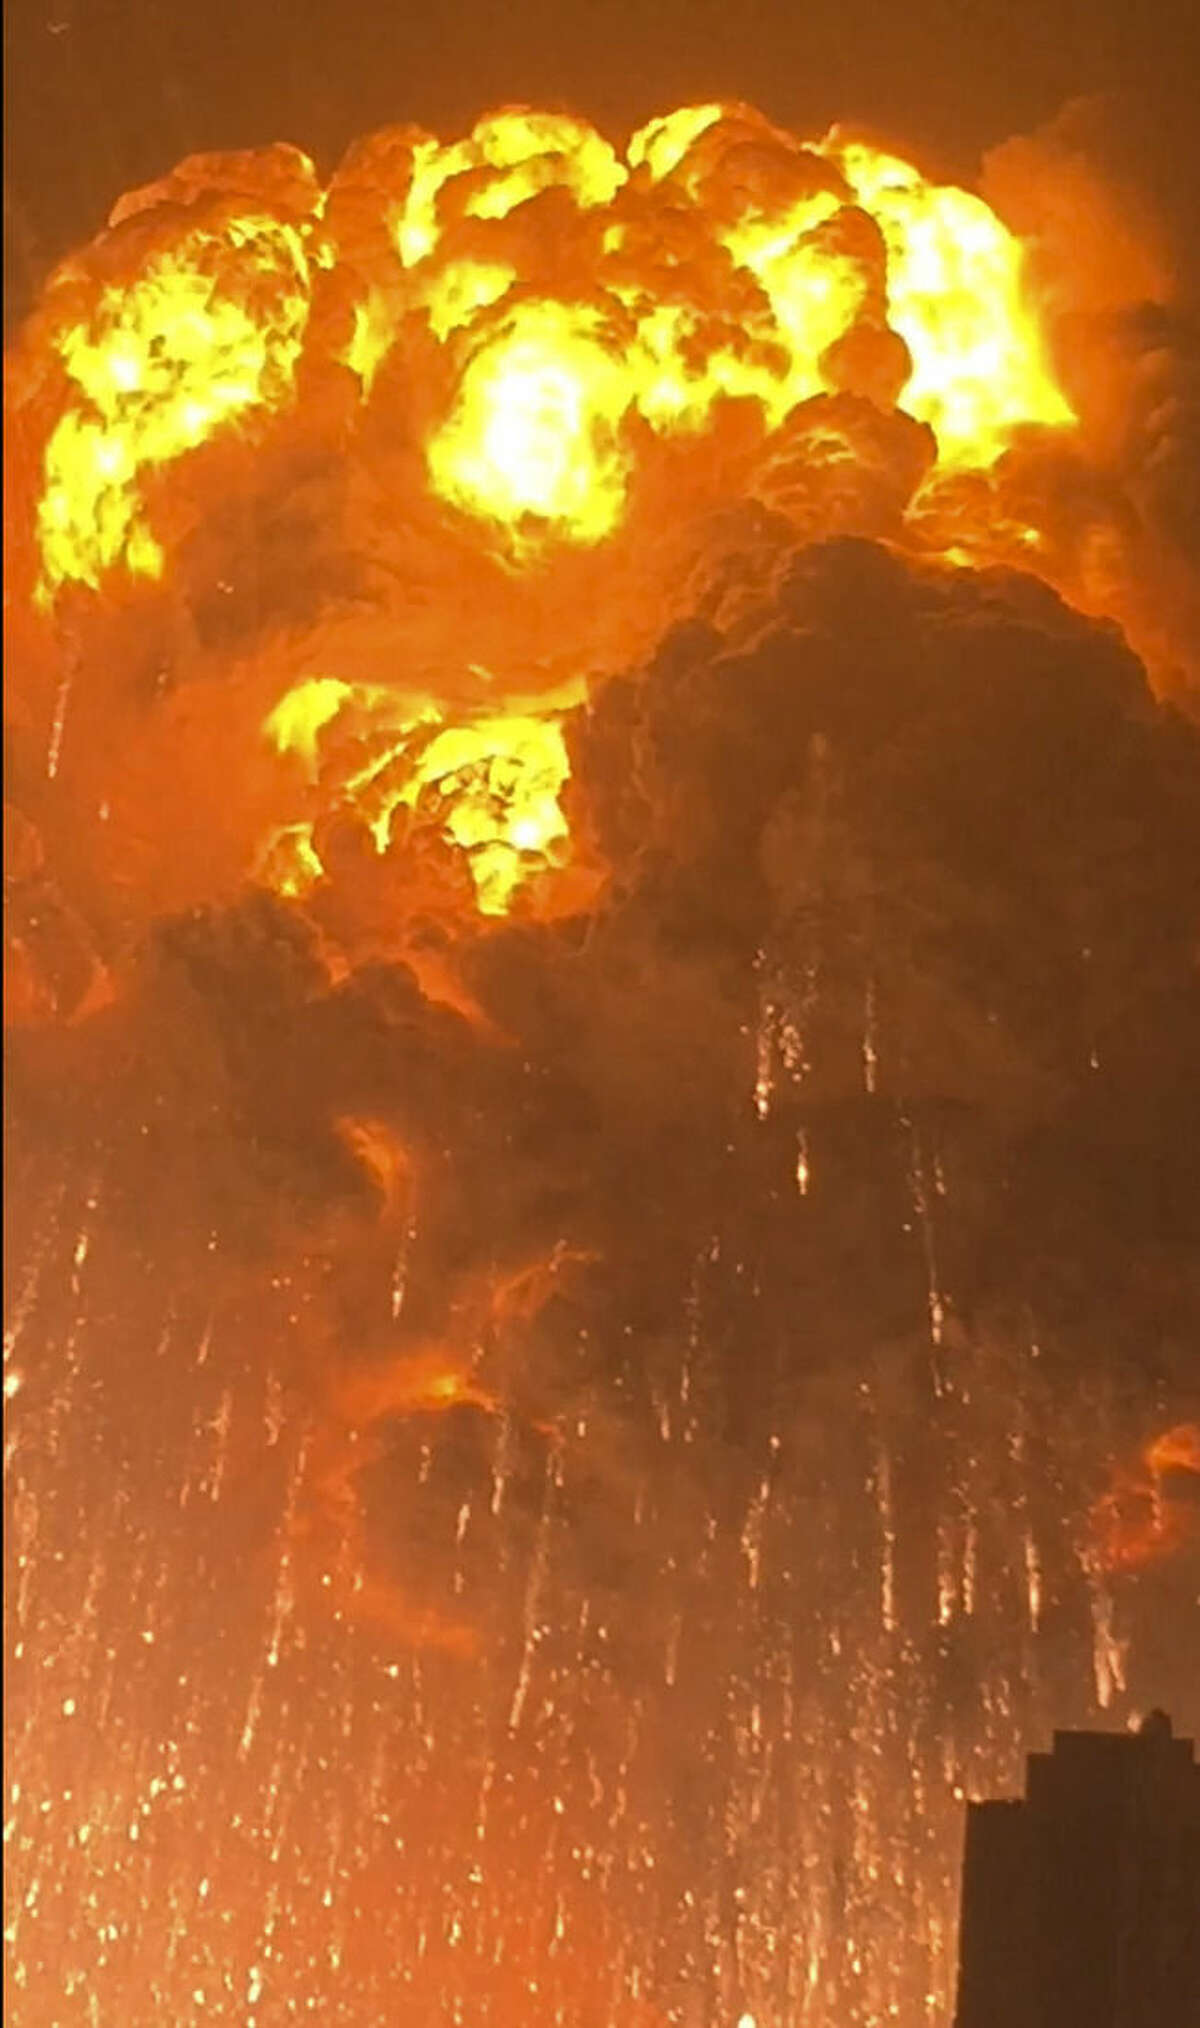 In this Wednesday, Aug. 12, 2015, image taken from video provided by Dan Van Duren a warehouse explodes in Tianjin, China, as filmed from a nearby residential building. Tianjin is the world's 10th largest port. (Dan Van Duren via AP) MANDATORY CREDIT